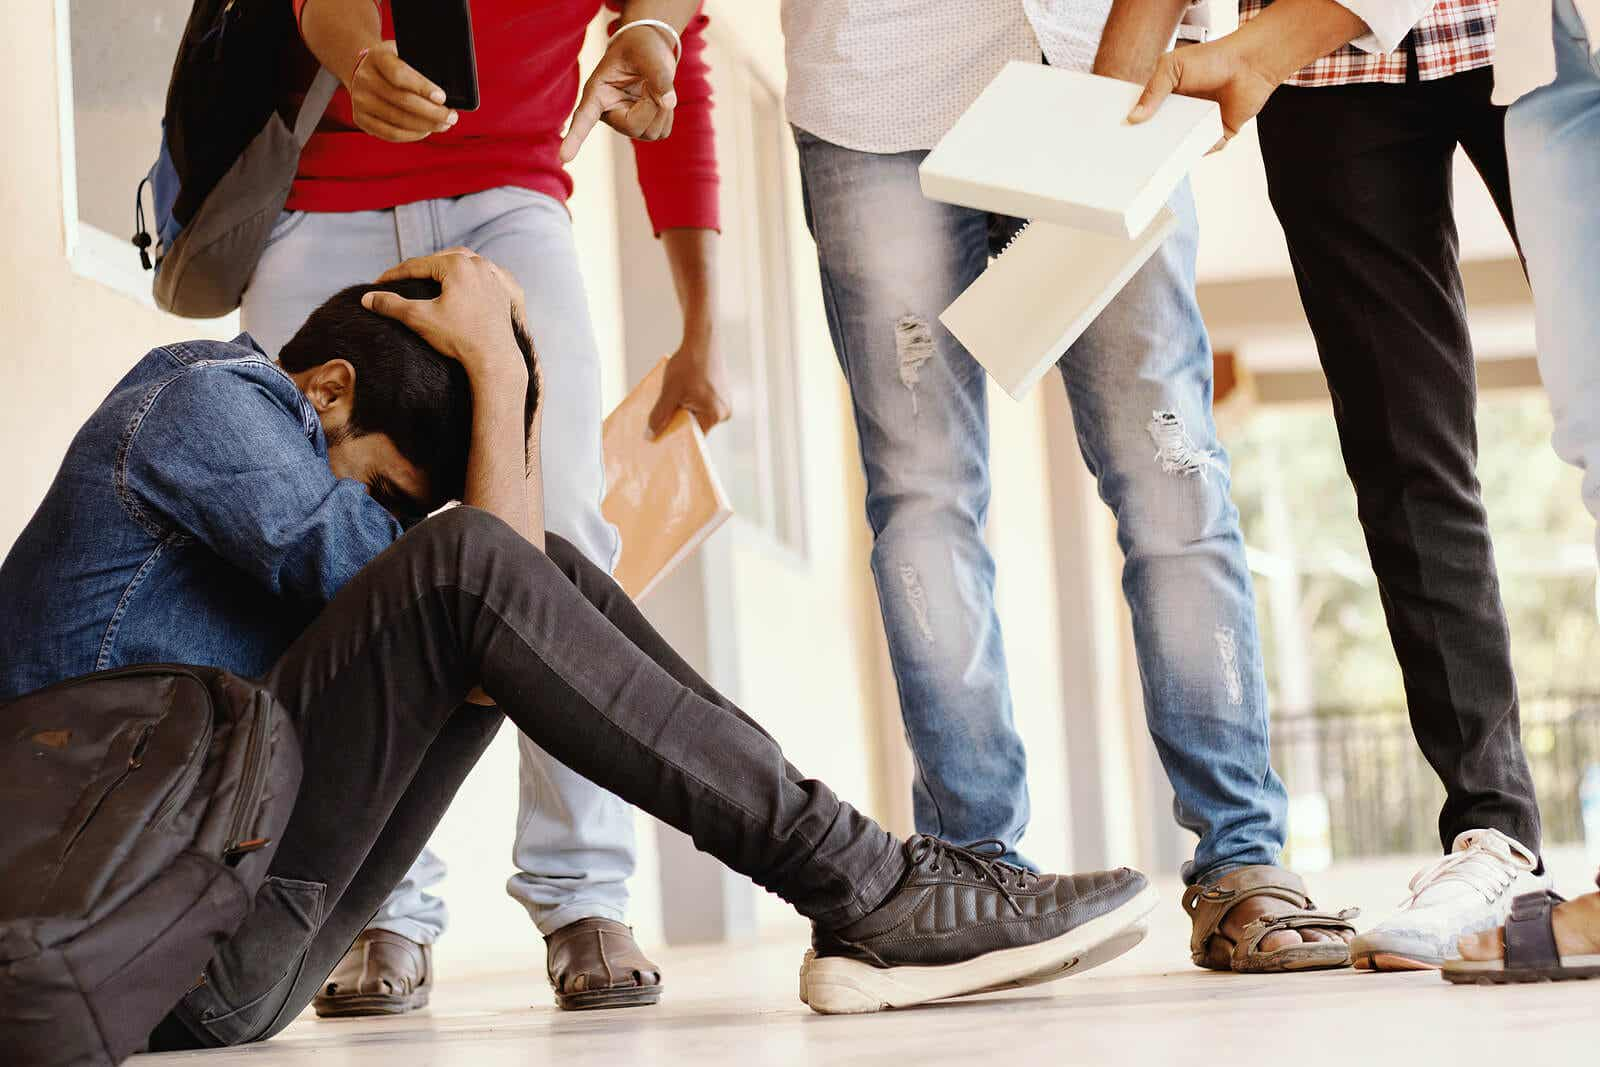 A teenage boy sitting on the floor at school, surrounded by a group of bullies.